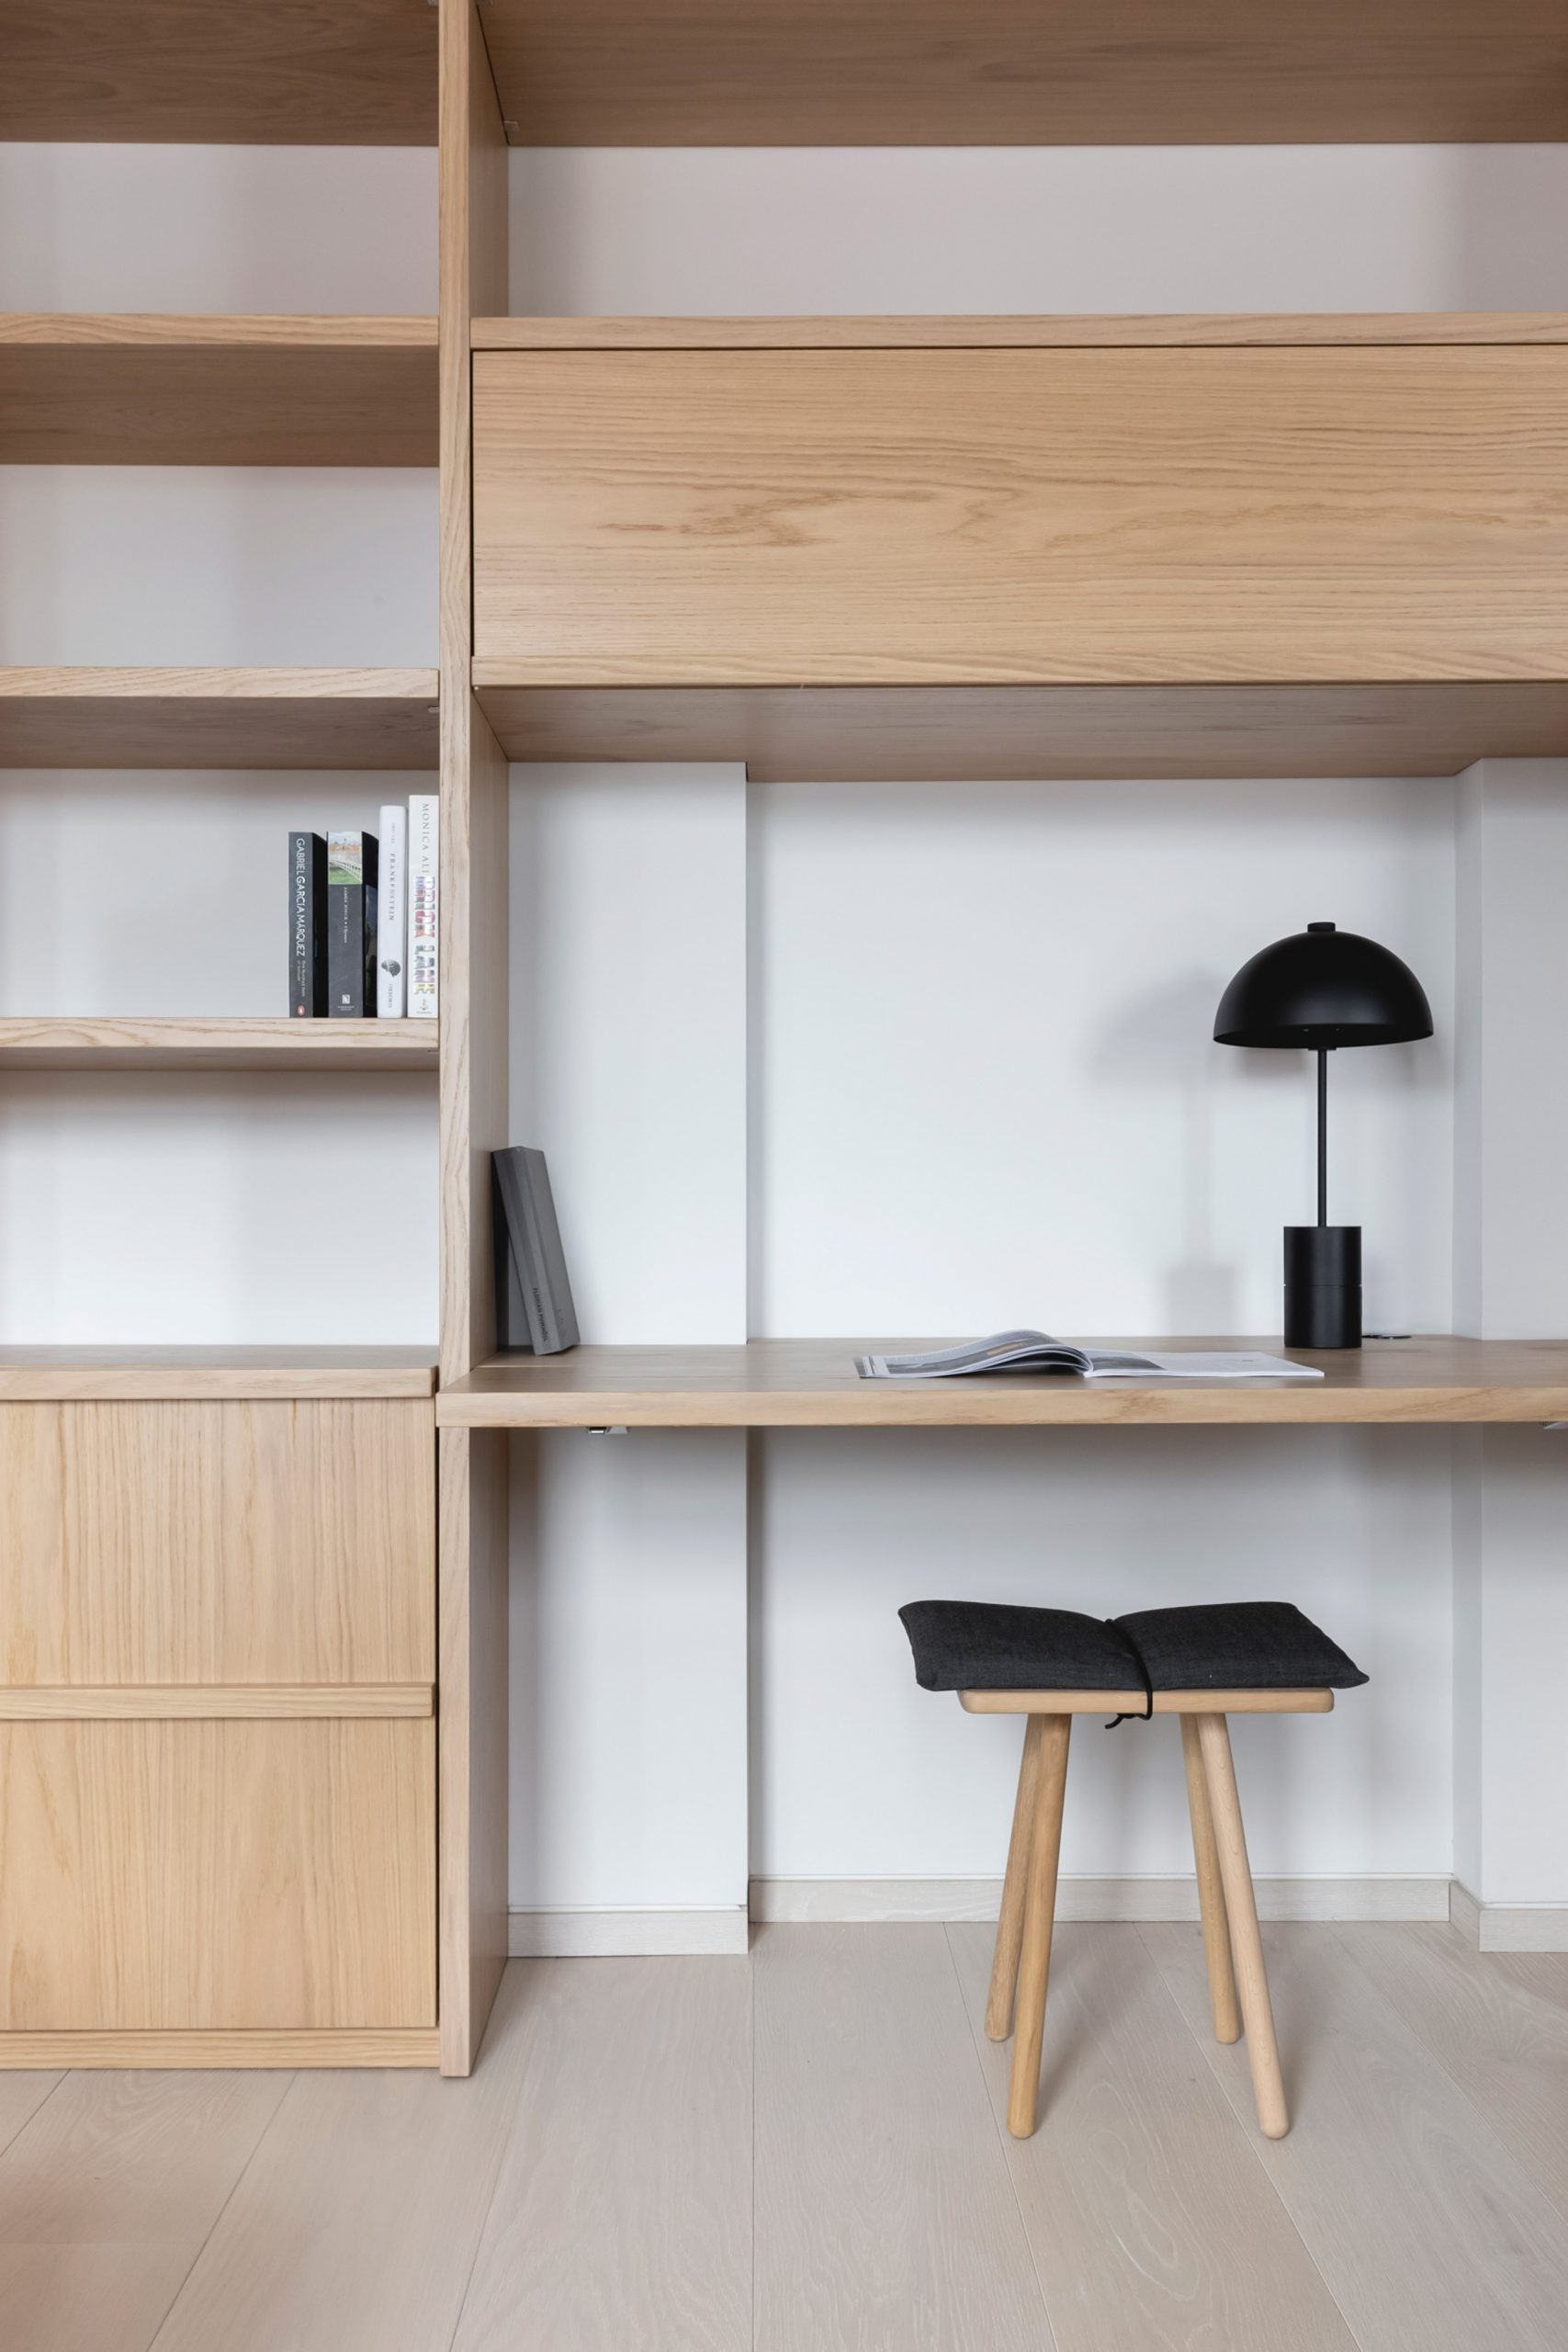 Built-in wooden storage in Mayfair pied-à-terre interior by MWAI